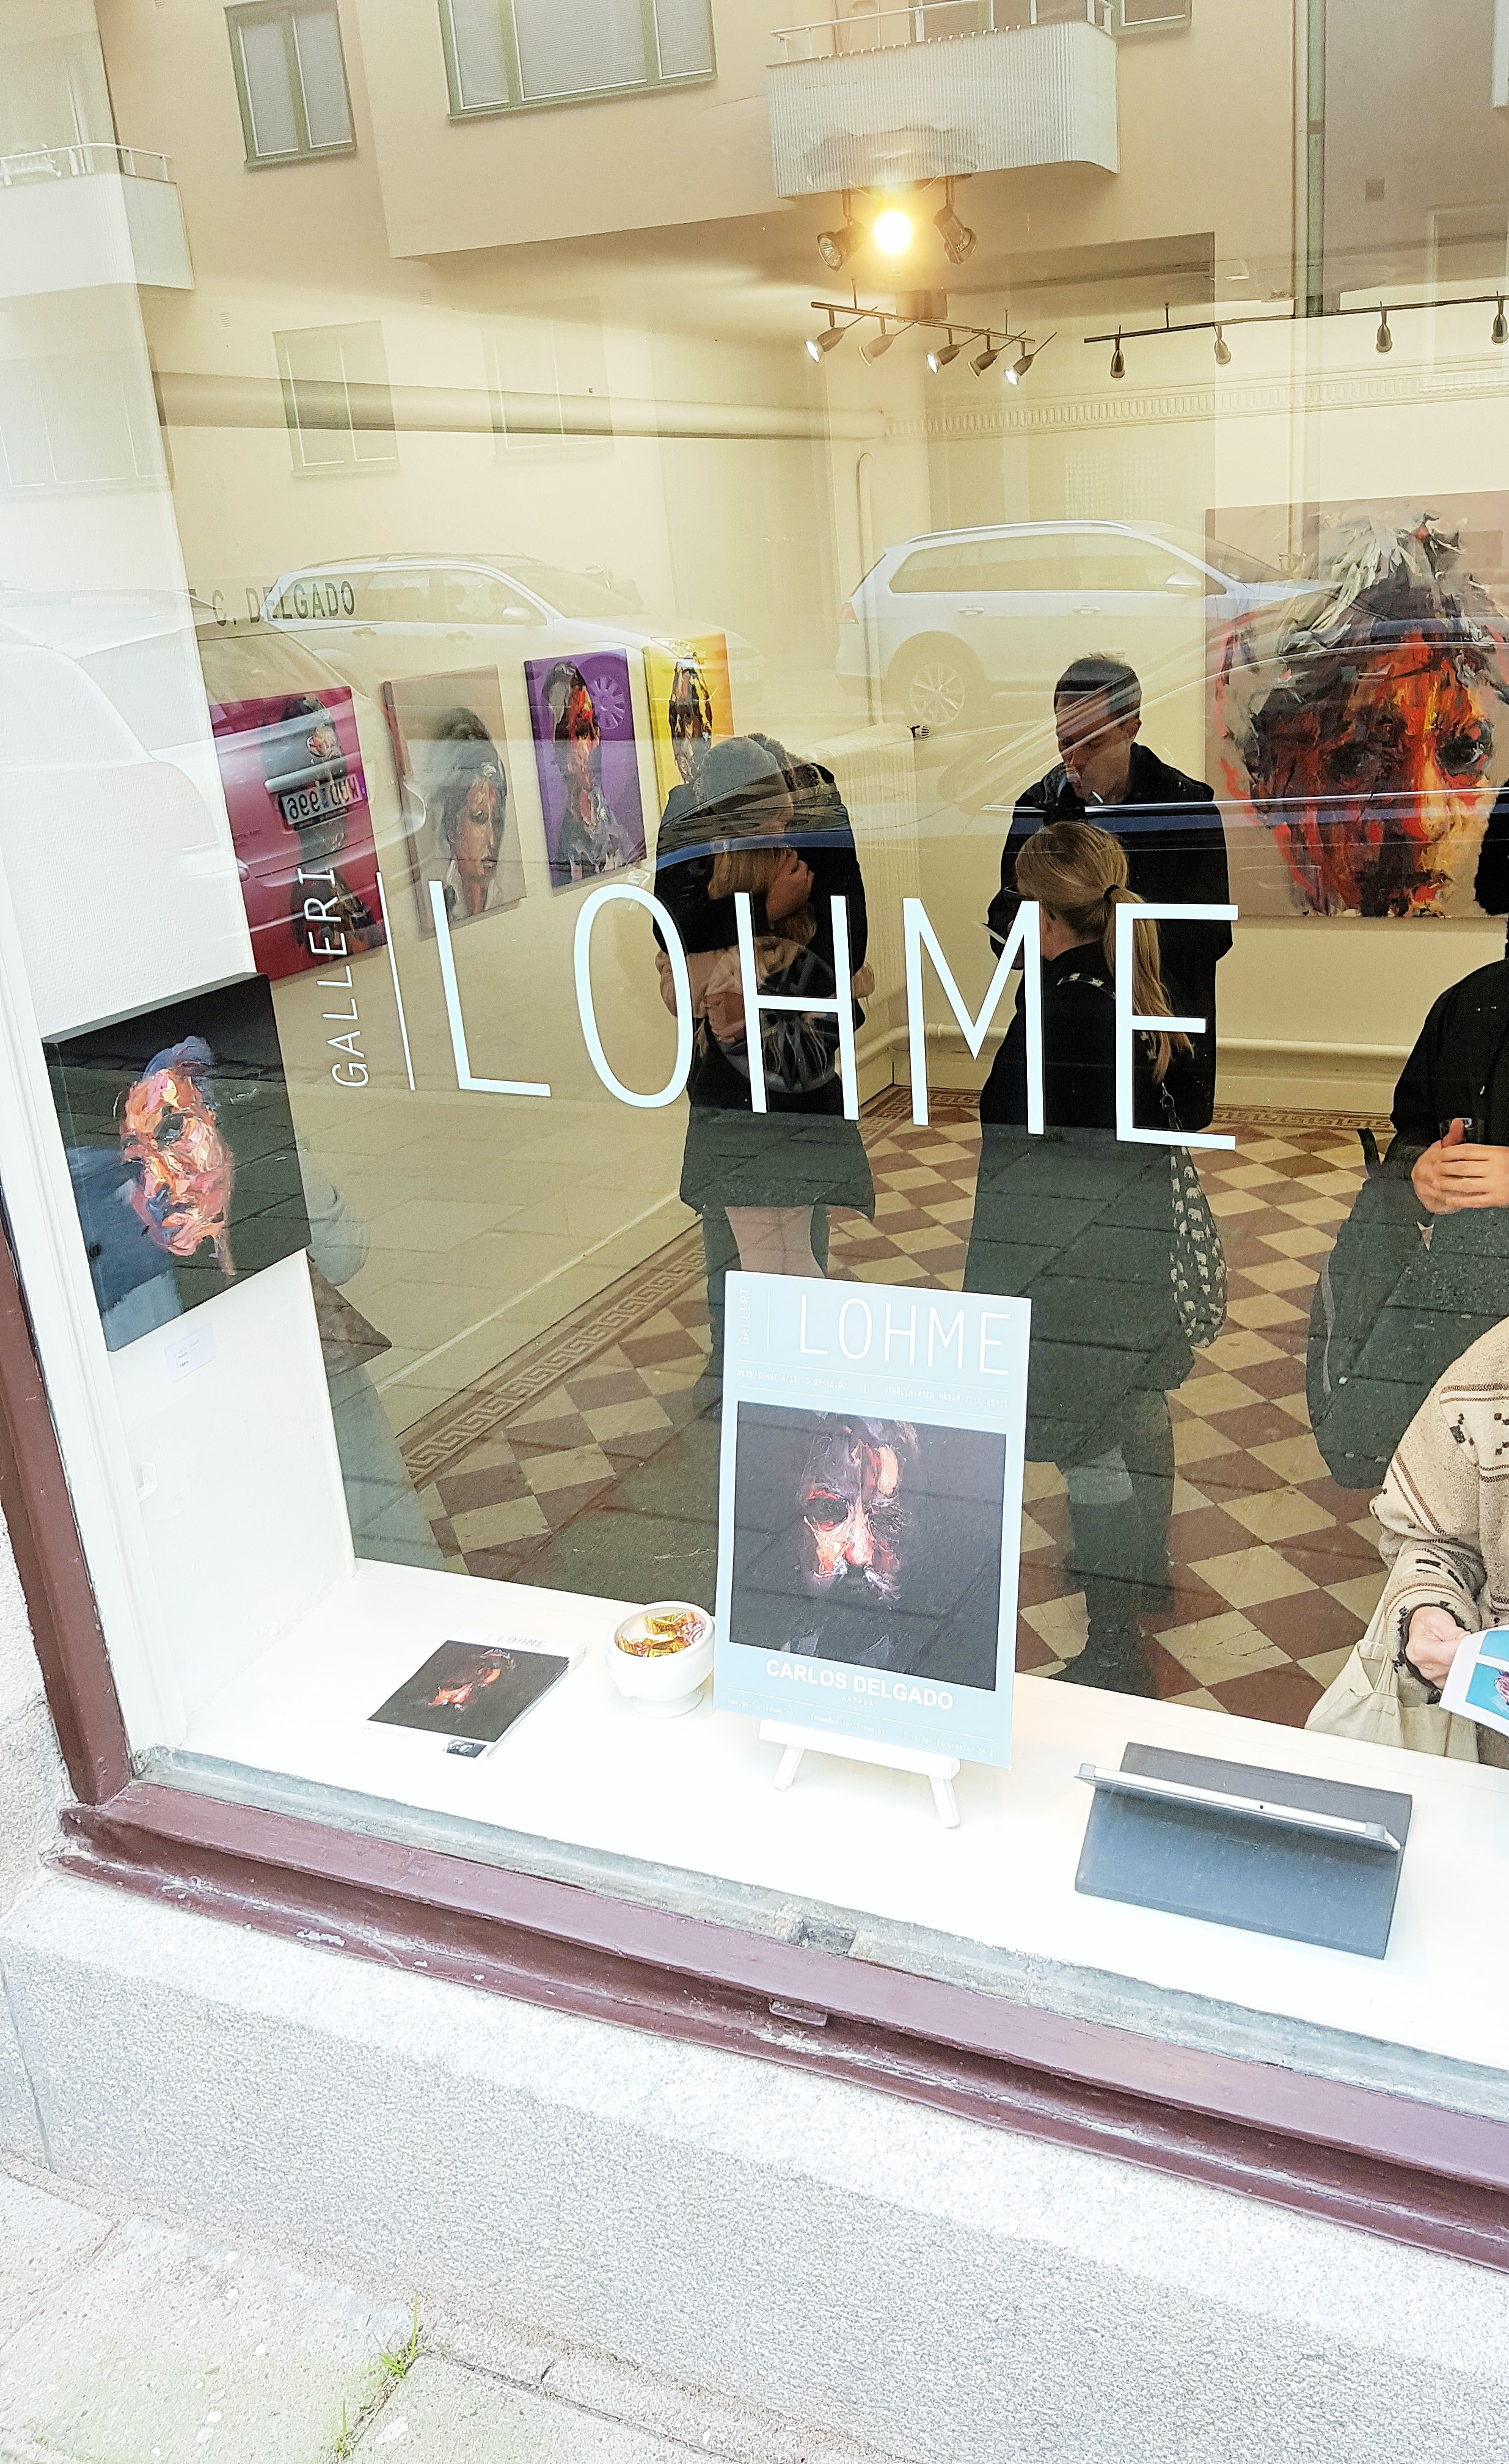 Photo from solo show at Galleri Lohme 2 years ago